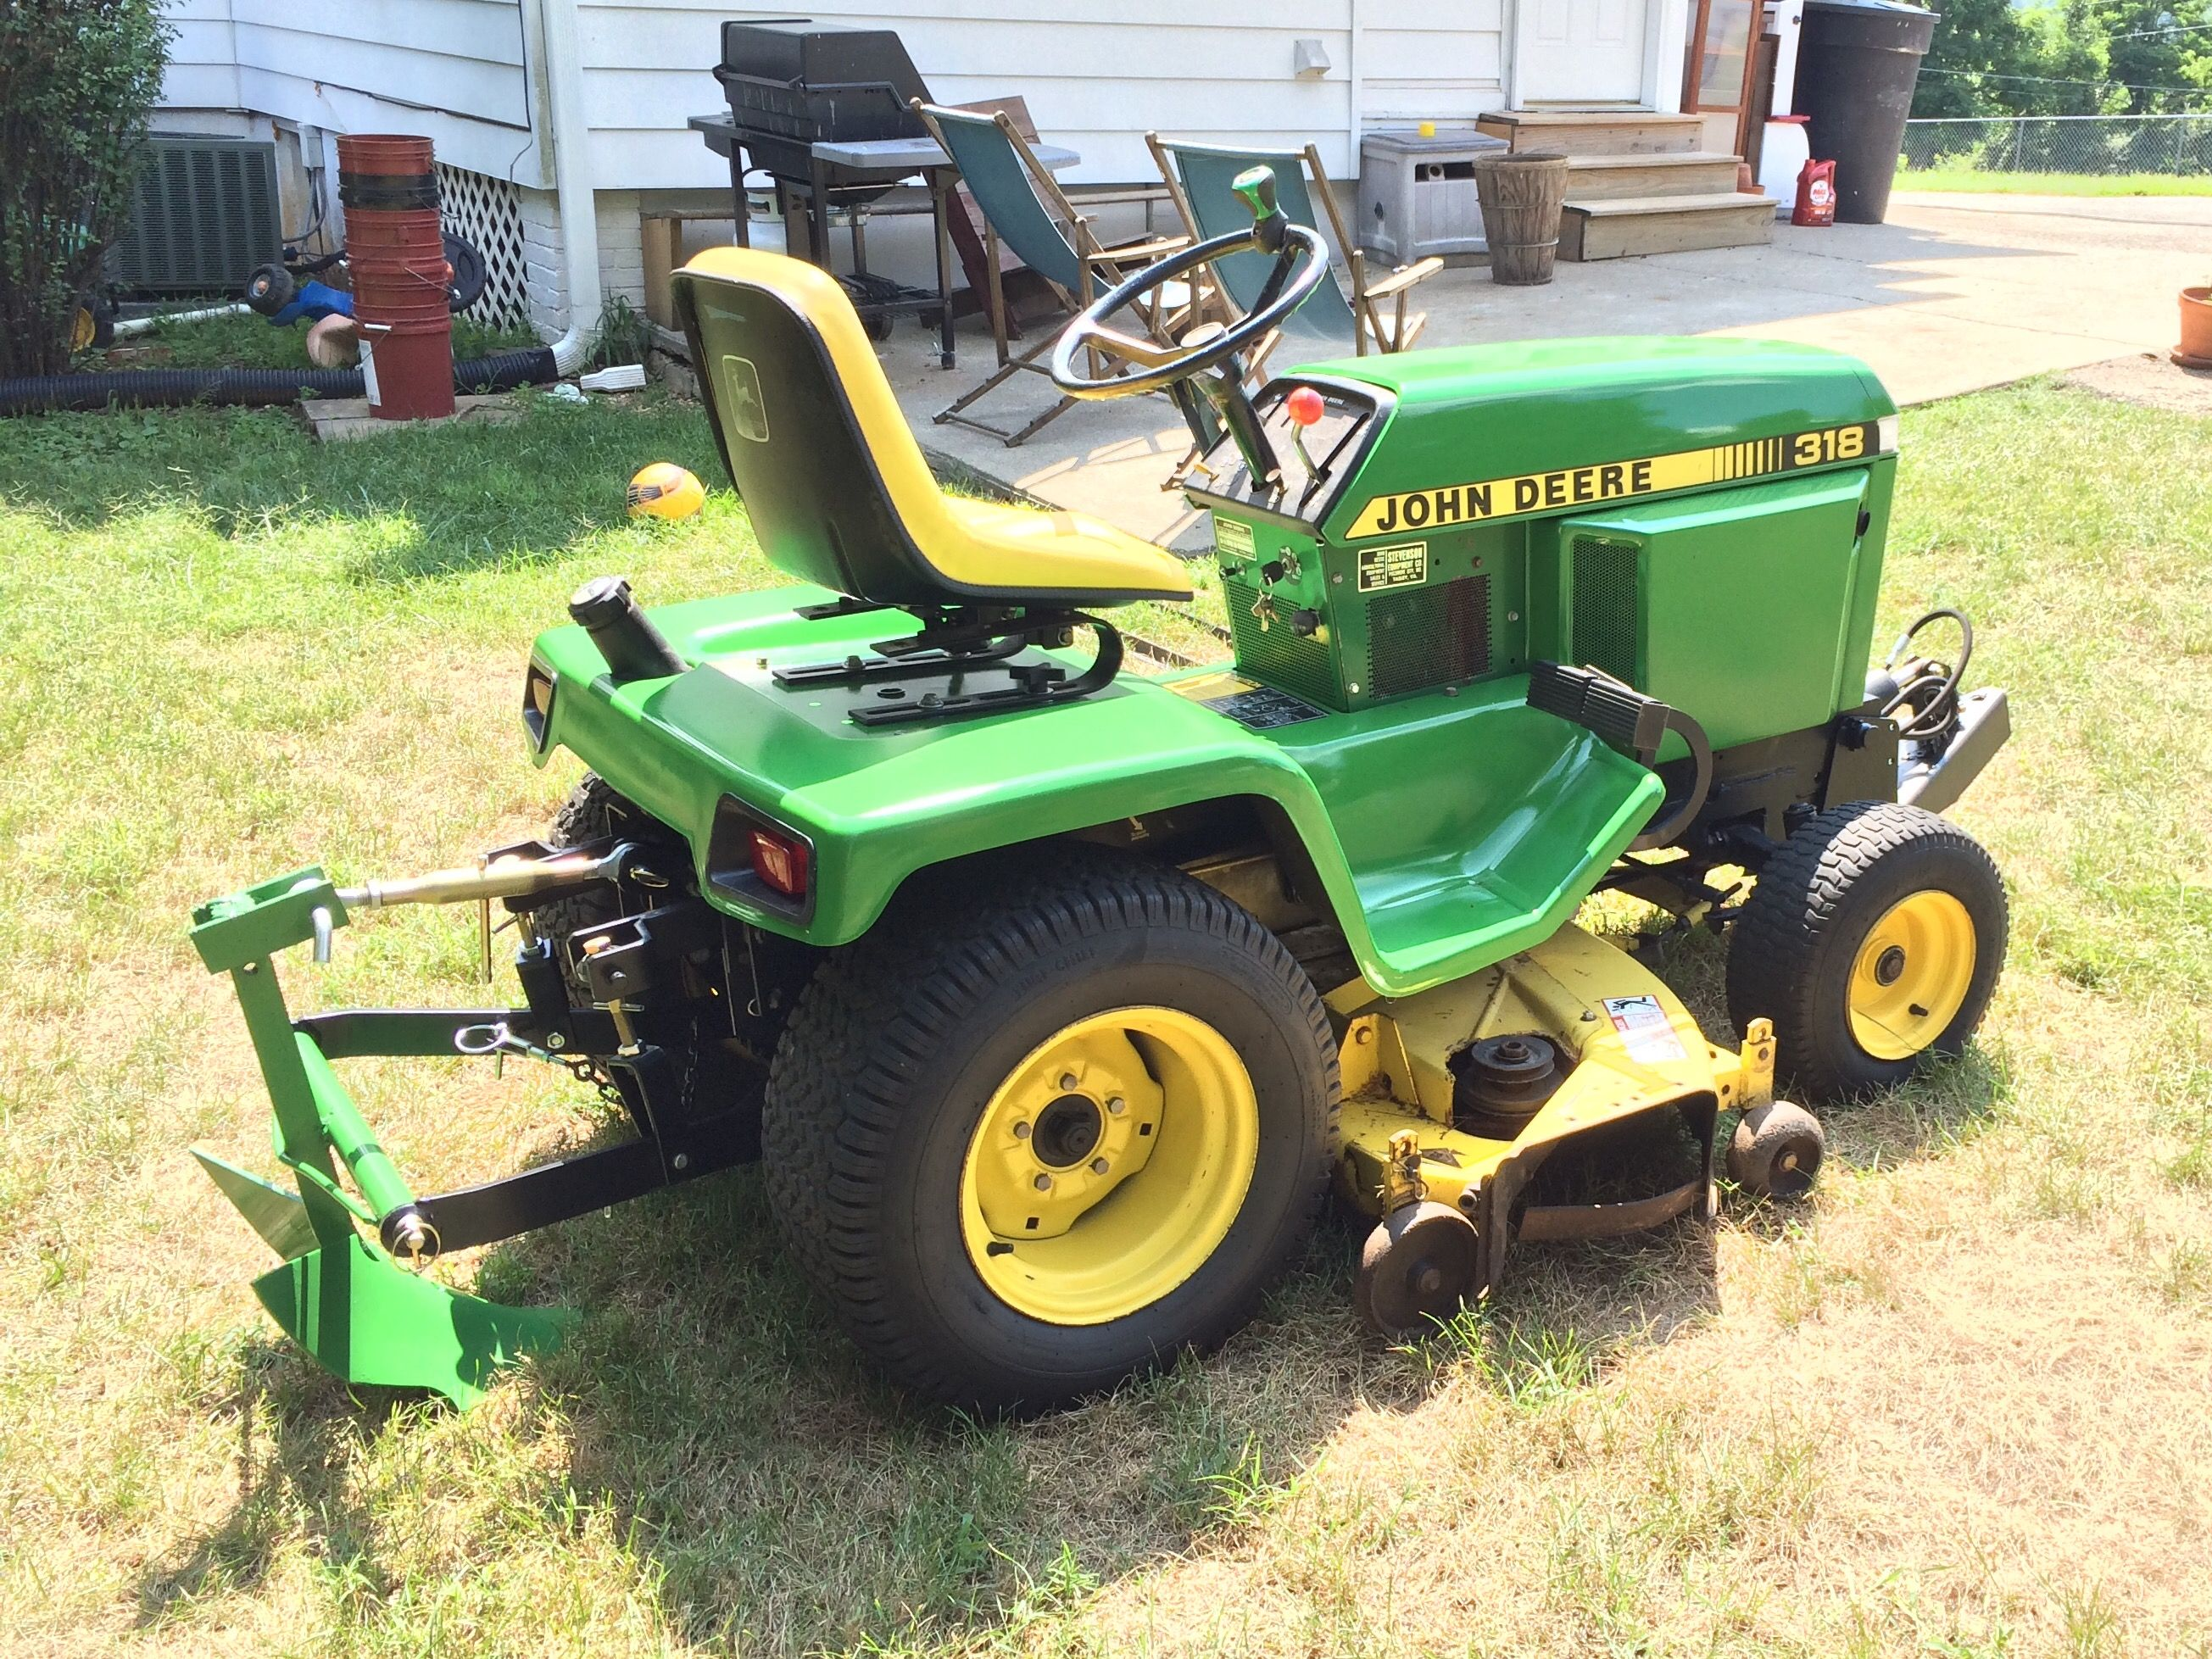 lawn shop new model hydraulic deck mowers gsa duty pwr equipment garden and repair sold hrs john tractor deere steering heavy tractors used mower